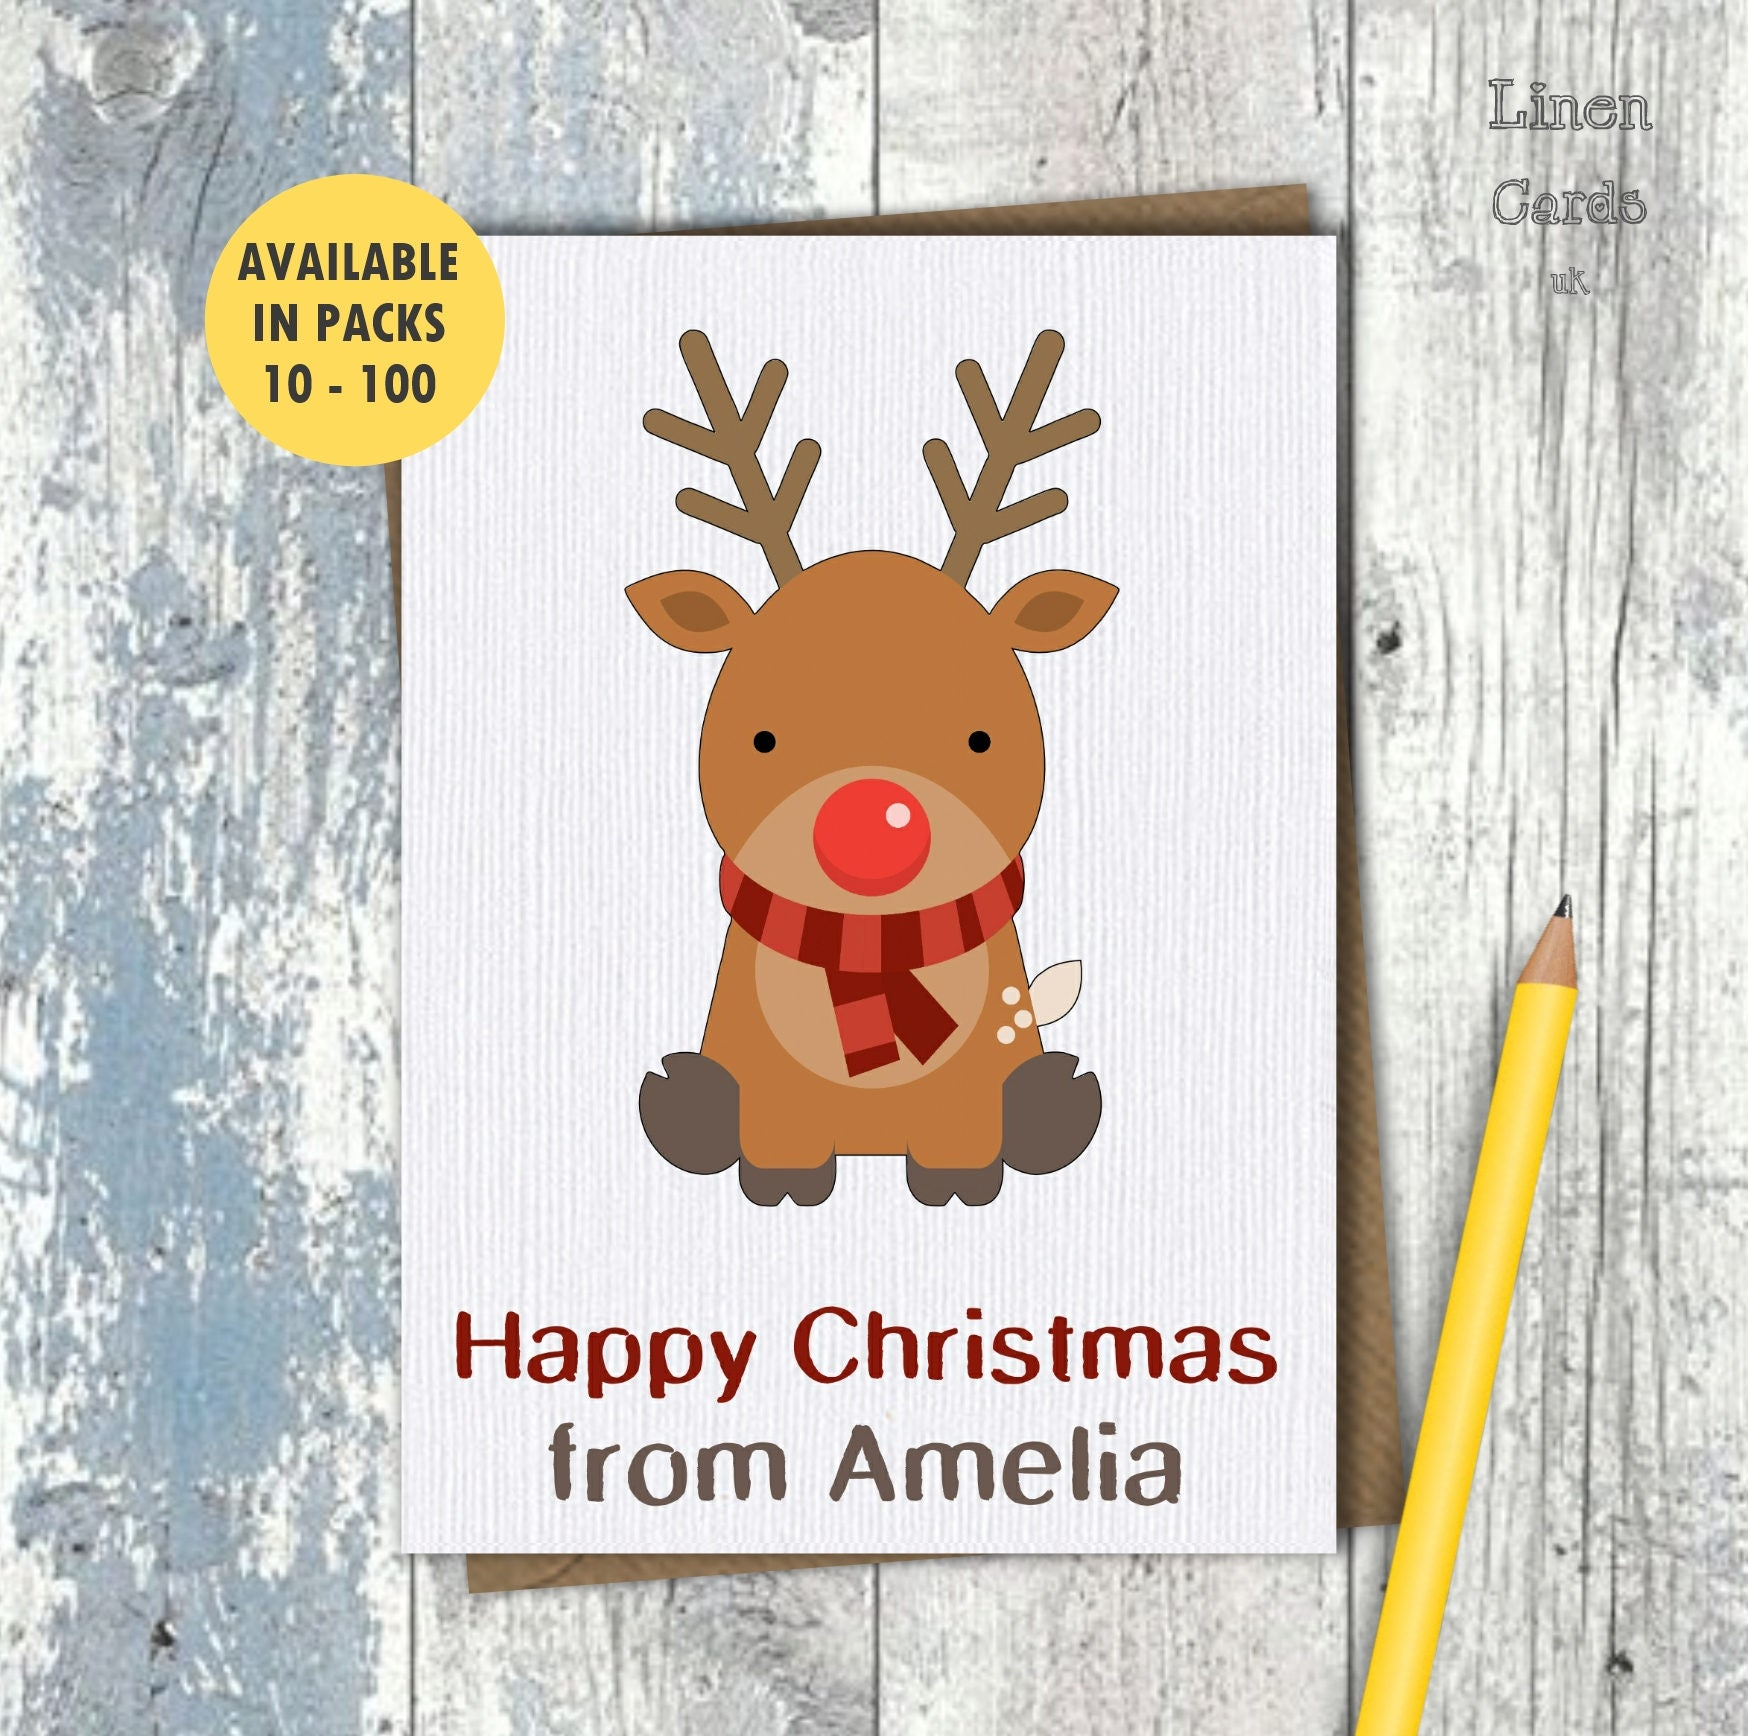 Personalised christmas cards packs childrens kids christmas cards personalised christmas cards packs childrens kids christmas cards school class christmas cards business colourmoves